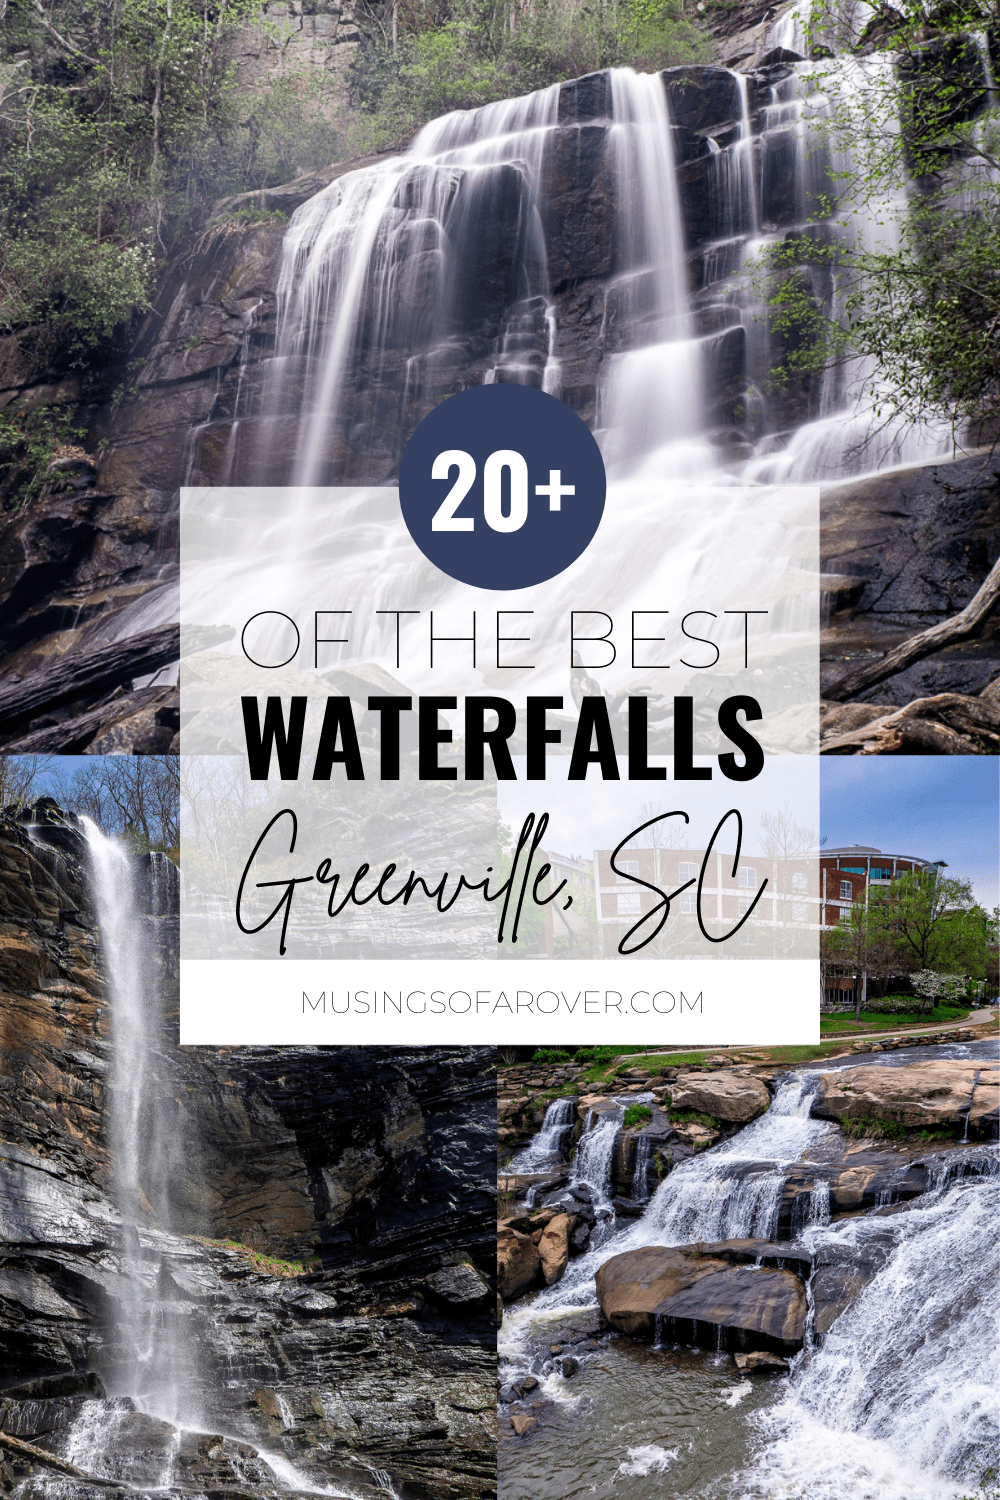 Are you looking for the best waterfalls near Greenville, SC? This list includes waterfalls within 2 hours and has links to their location, information on any hiking required, and a link to a full trail guide. Plan waterfall filled day trip for your summer adventure here!